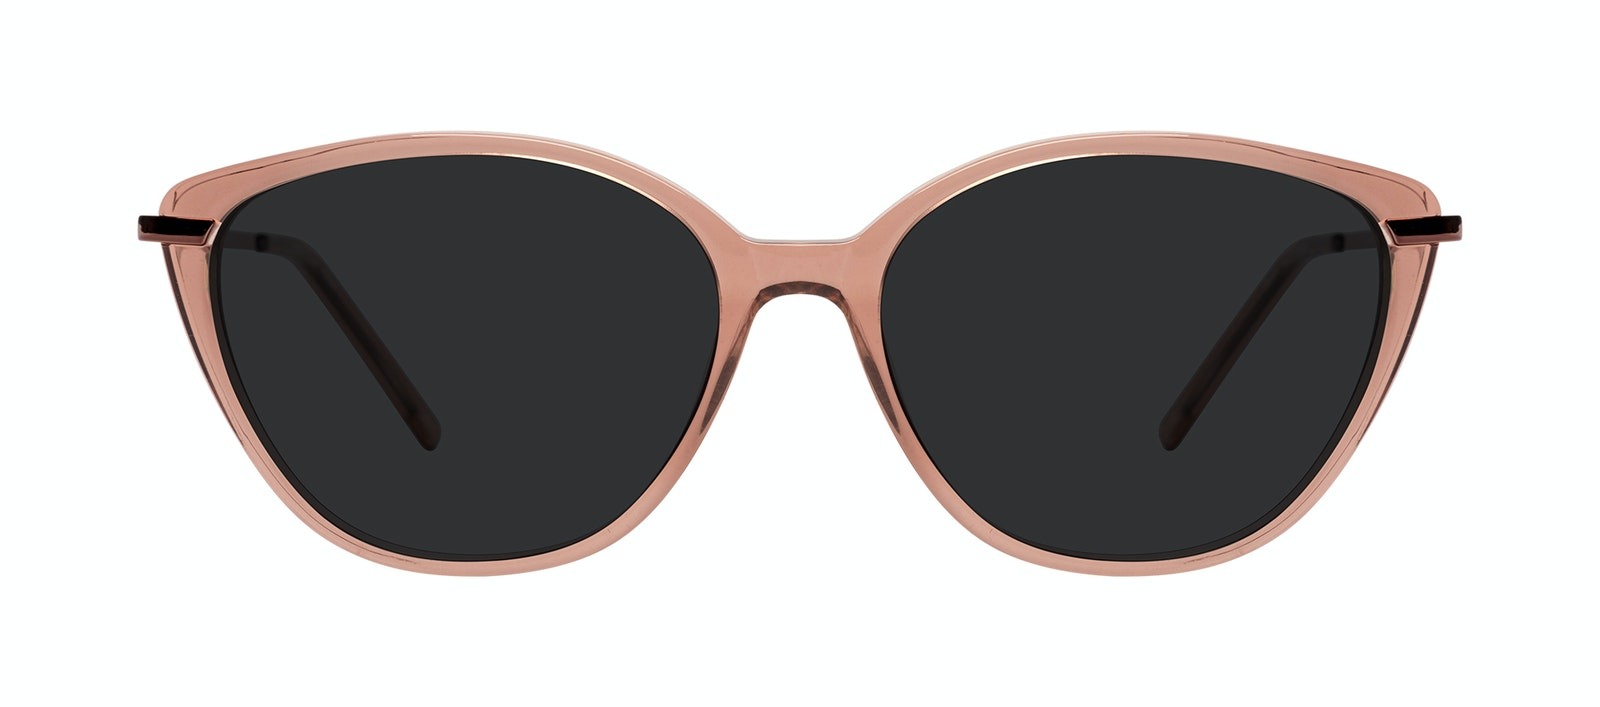 Affordable Fashion Glasses Sunglasses Women Illusion Plus Rose Front